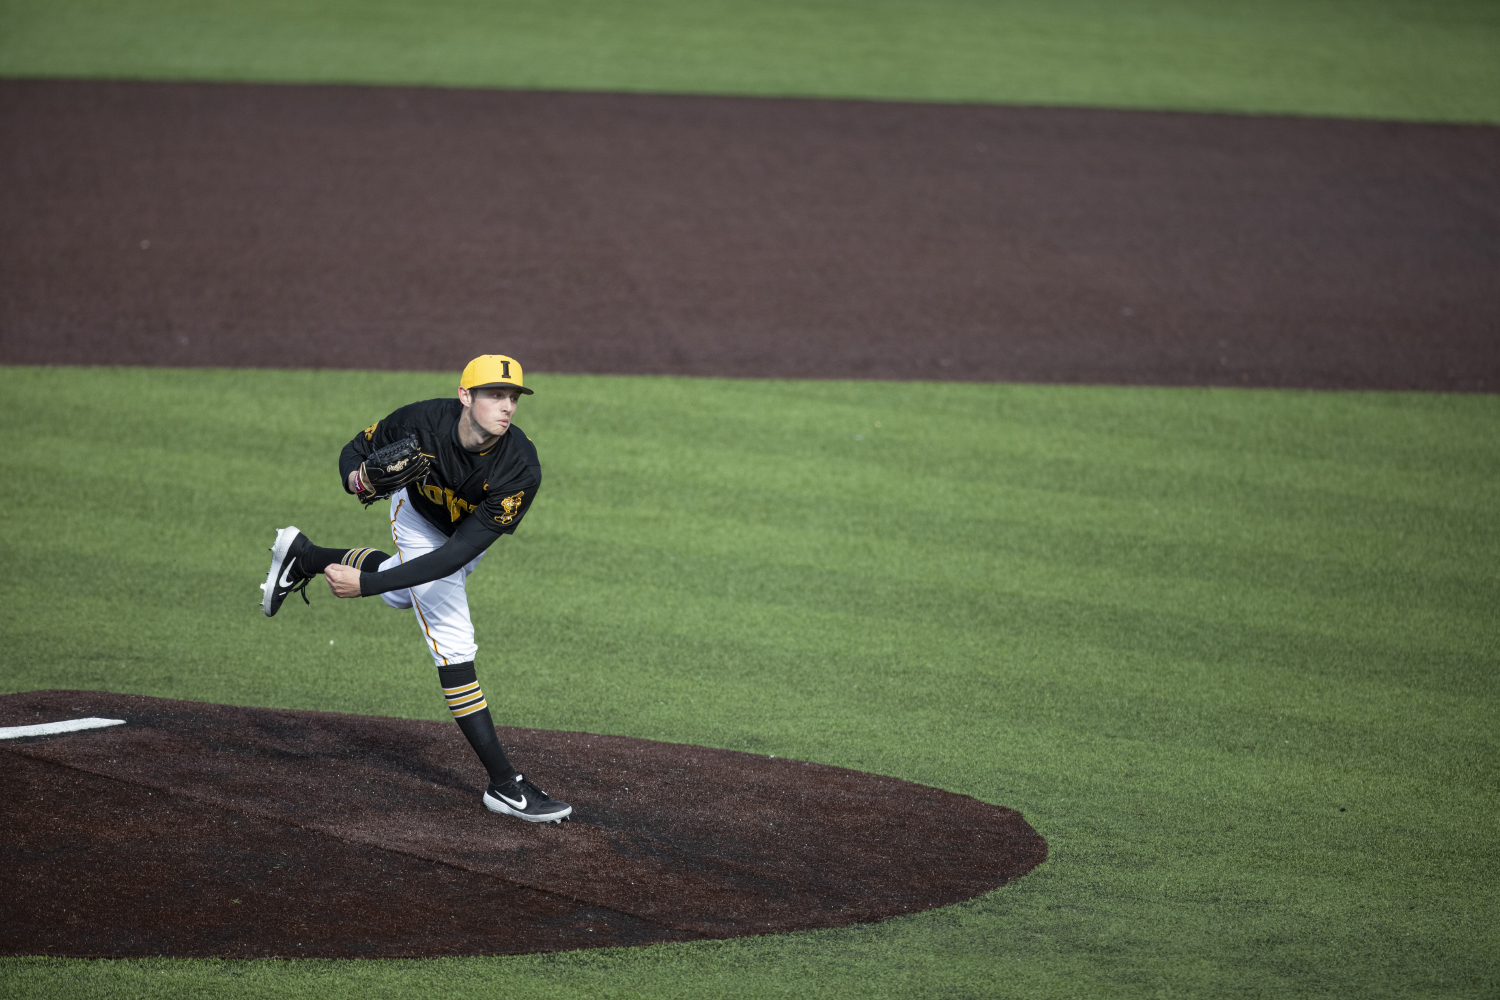 Hawkeye pitcher Trenton Wallace pitches during the baseball game against Illinois at Duane Banks Field on March 30, 2019. The Hawkeyes defeated the Fighting Illini 2-1 after the 9th inning.(Ryan Adams/The Daily Iowan)